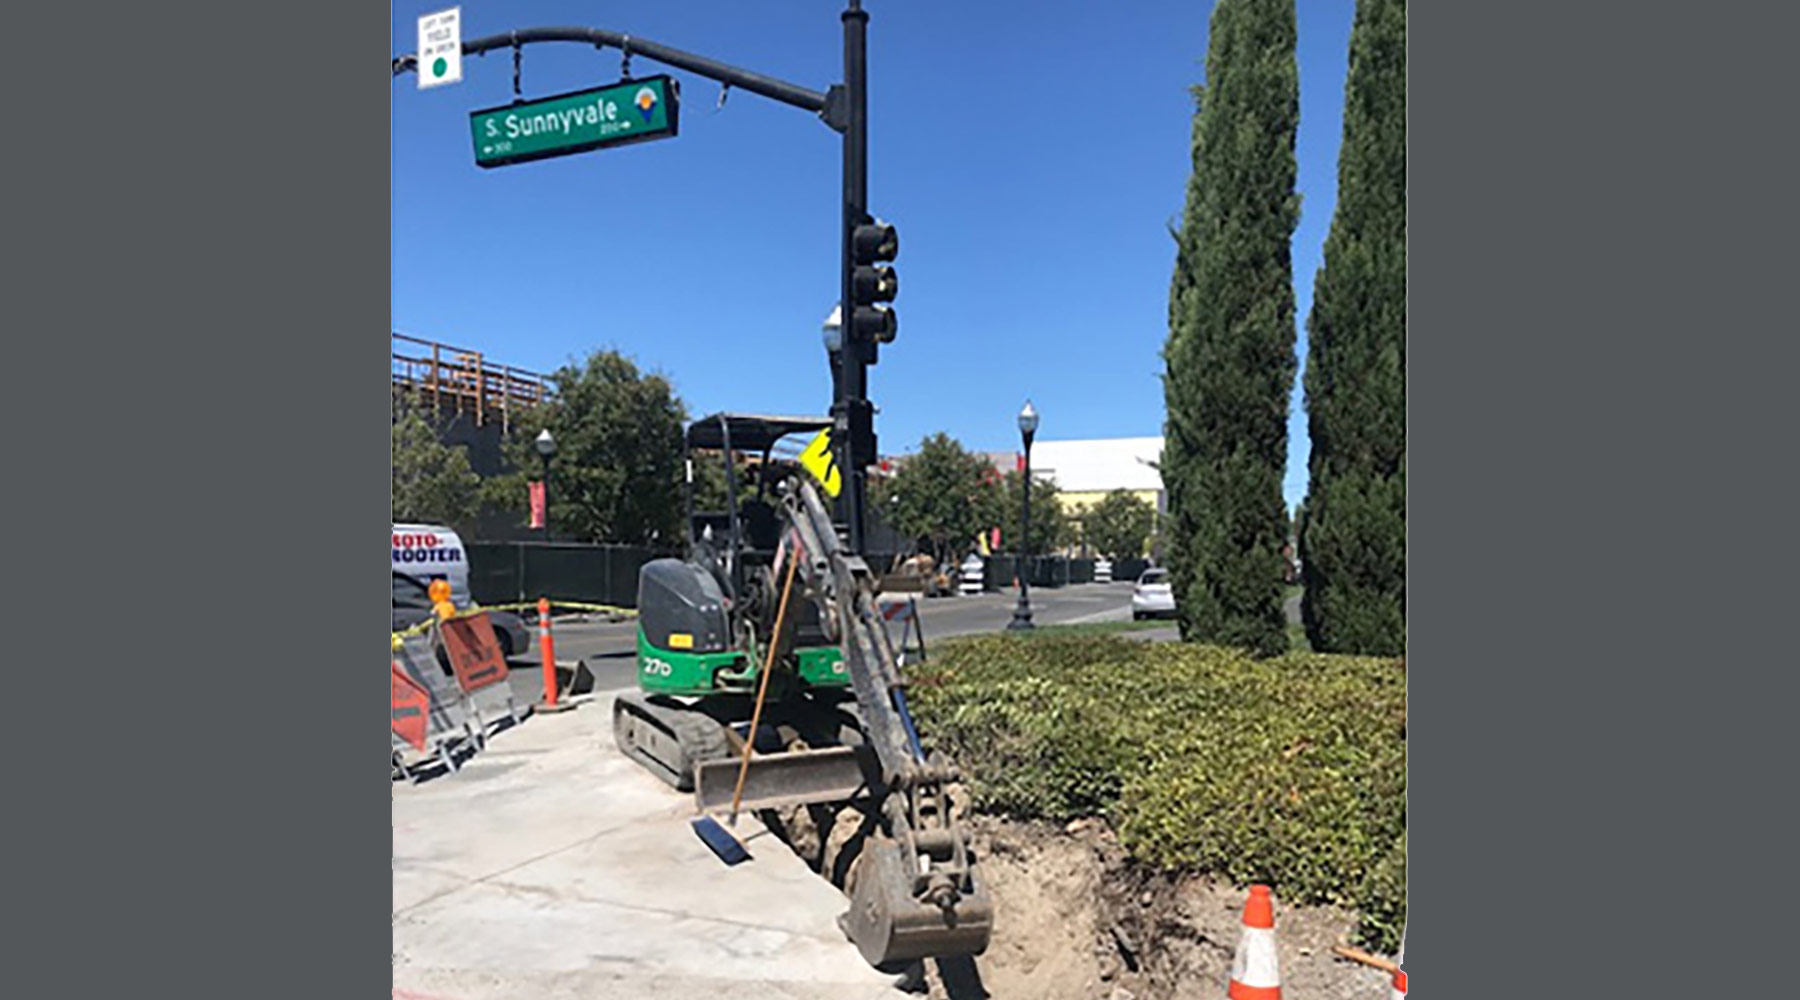 Trenching for traffic signal conduit install at Sunnyvale/McKinley intersection.